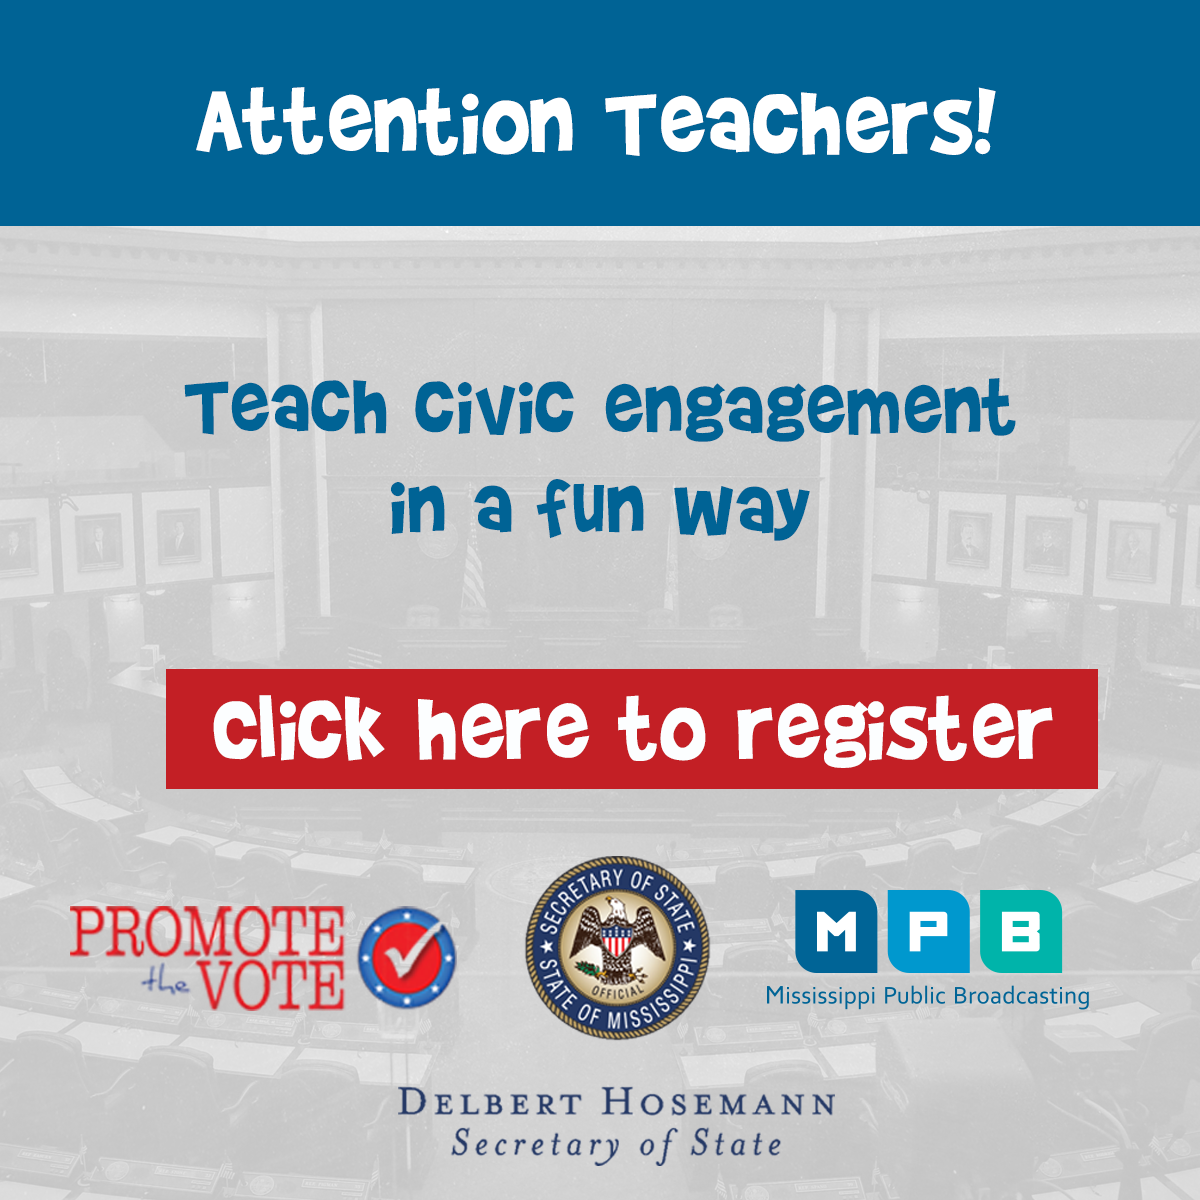 MPB has partnered with the Secretary of State's Office for the Promote the Vote program created for K-12 students.